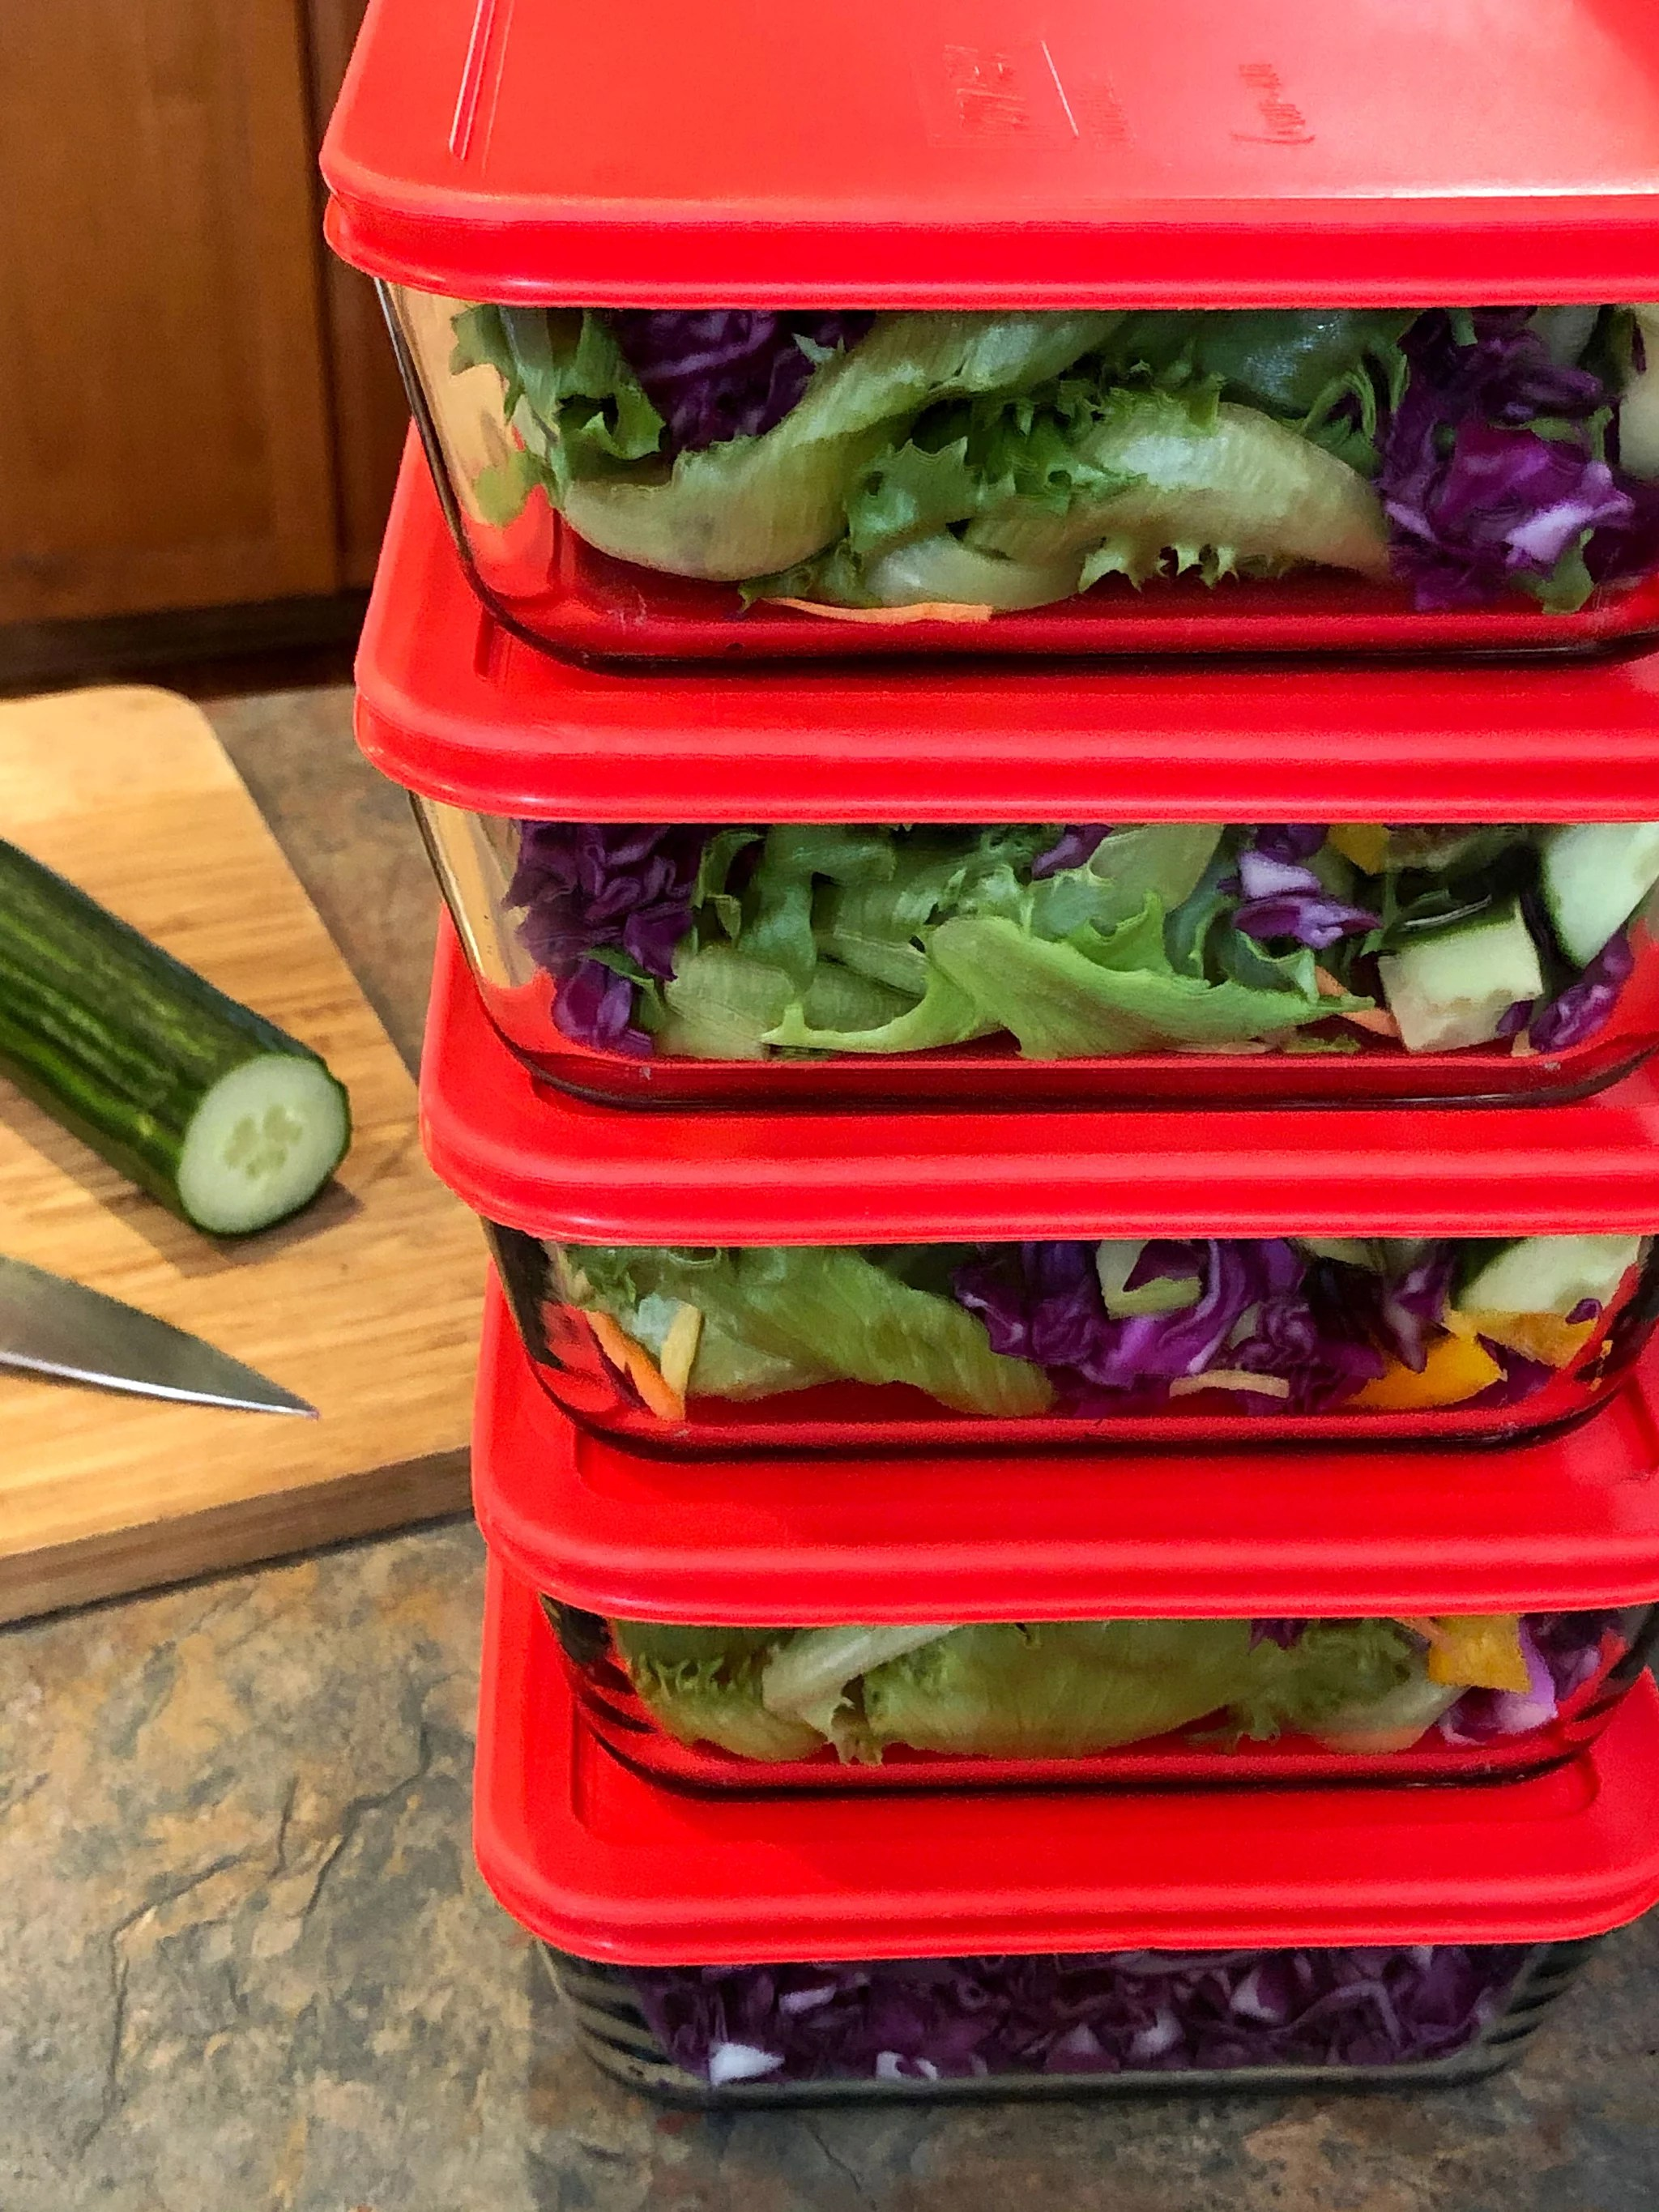 Even If You're Working From Home Now, a Dietitian Says It's Still Important to Meal Prep